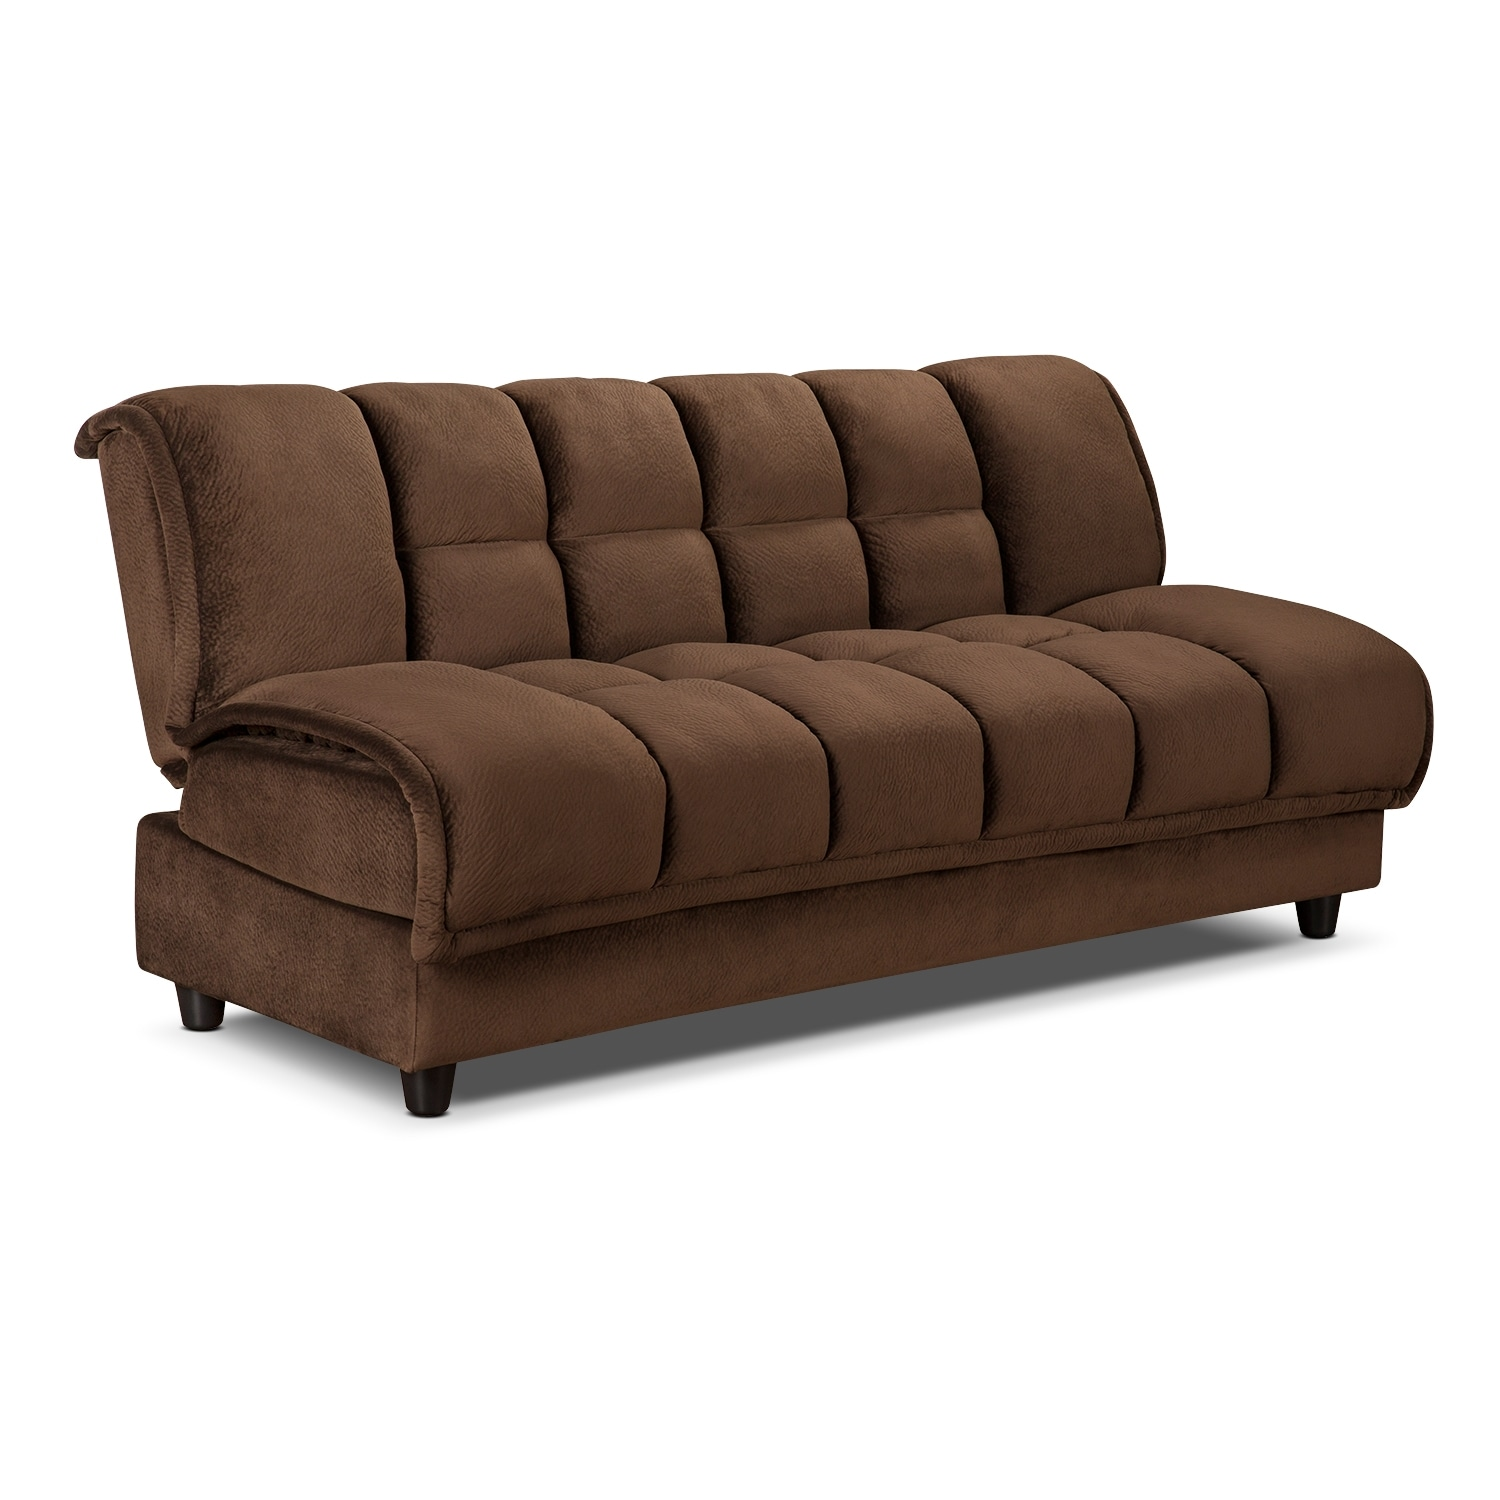 Bennett futon sofa bed espresso american signature for Furniture sofa bed